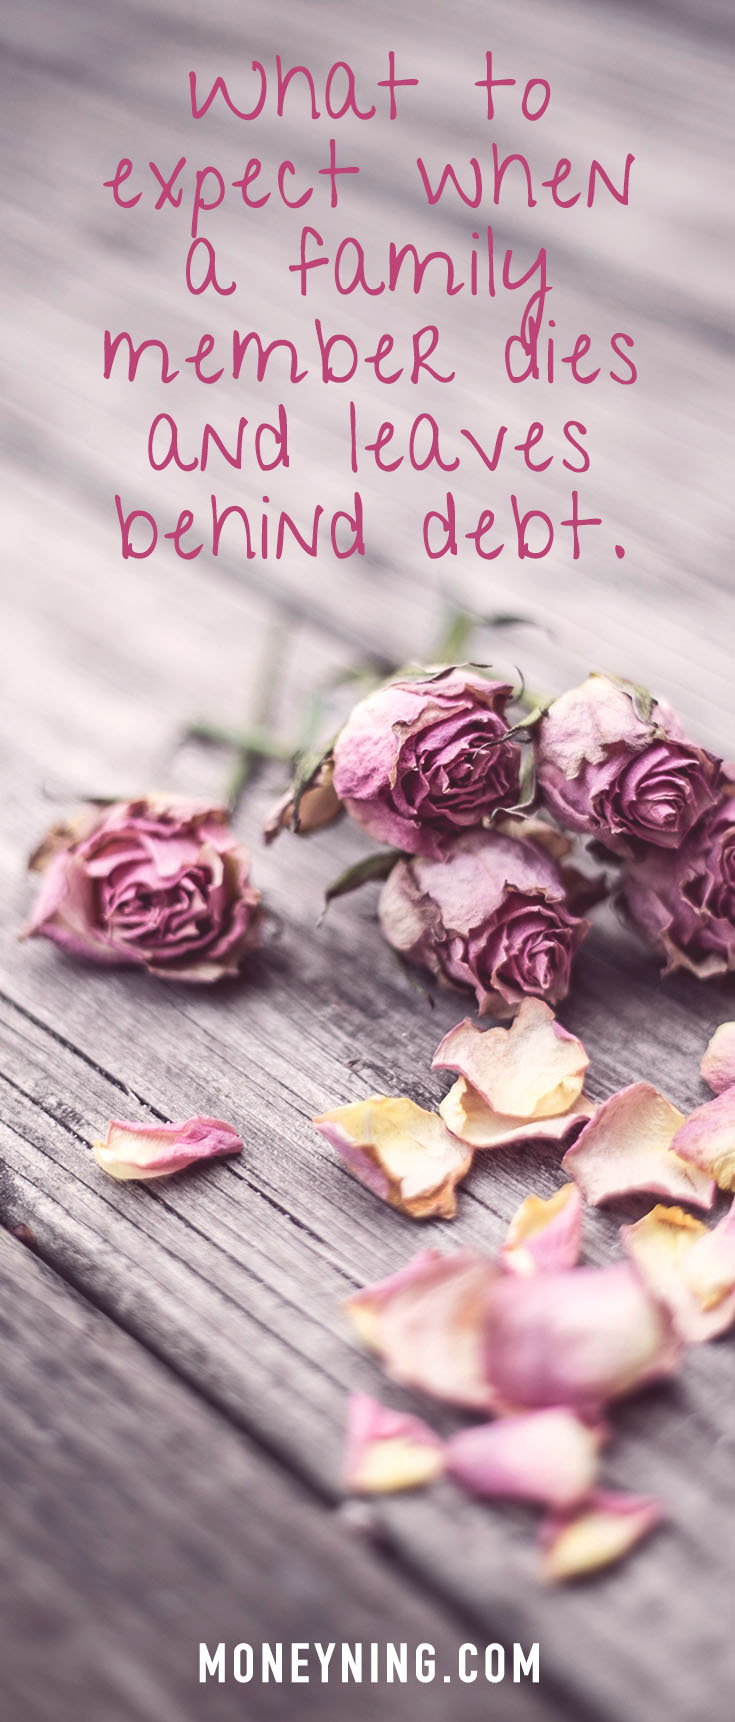 death and debt